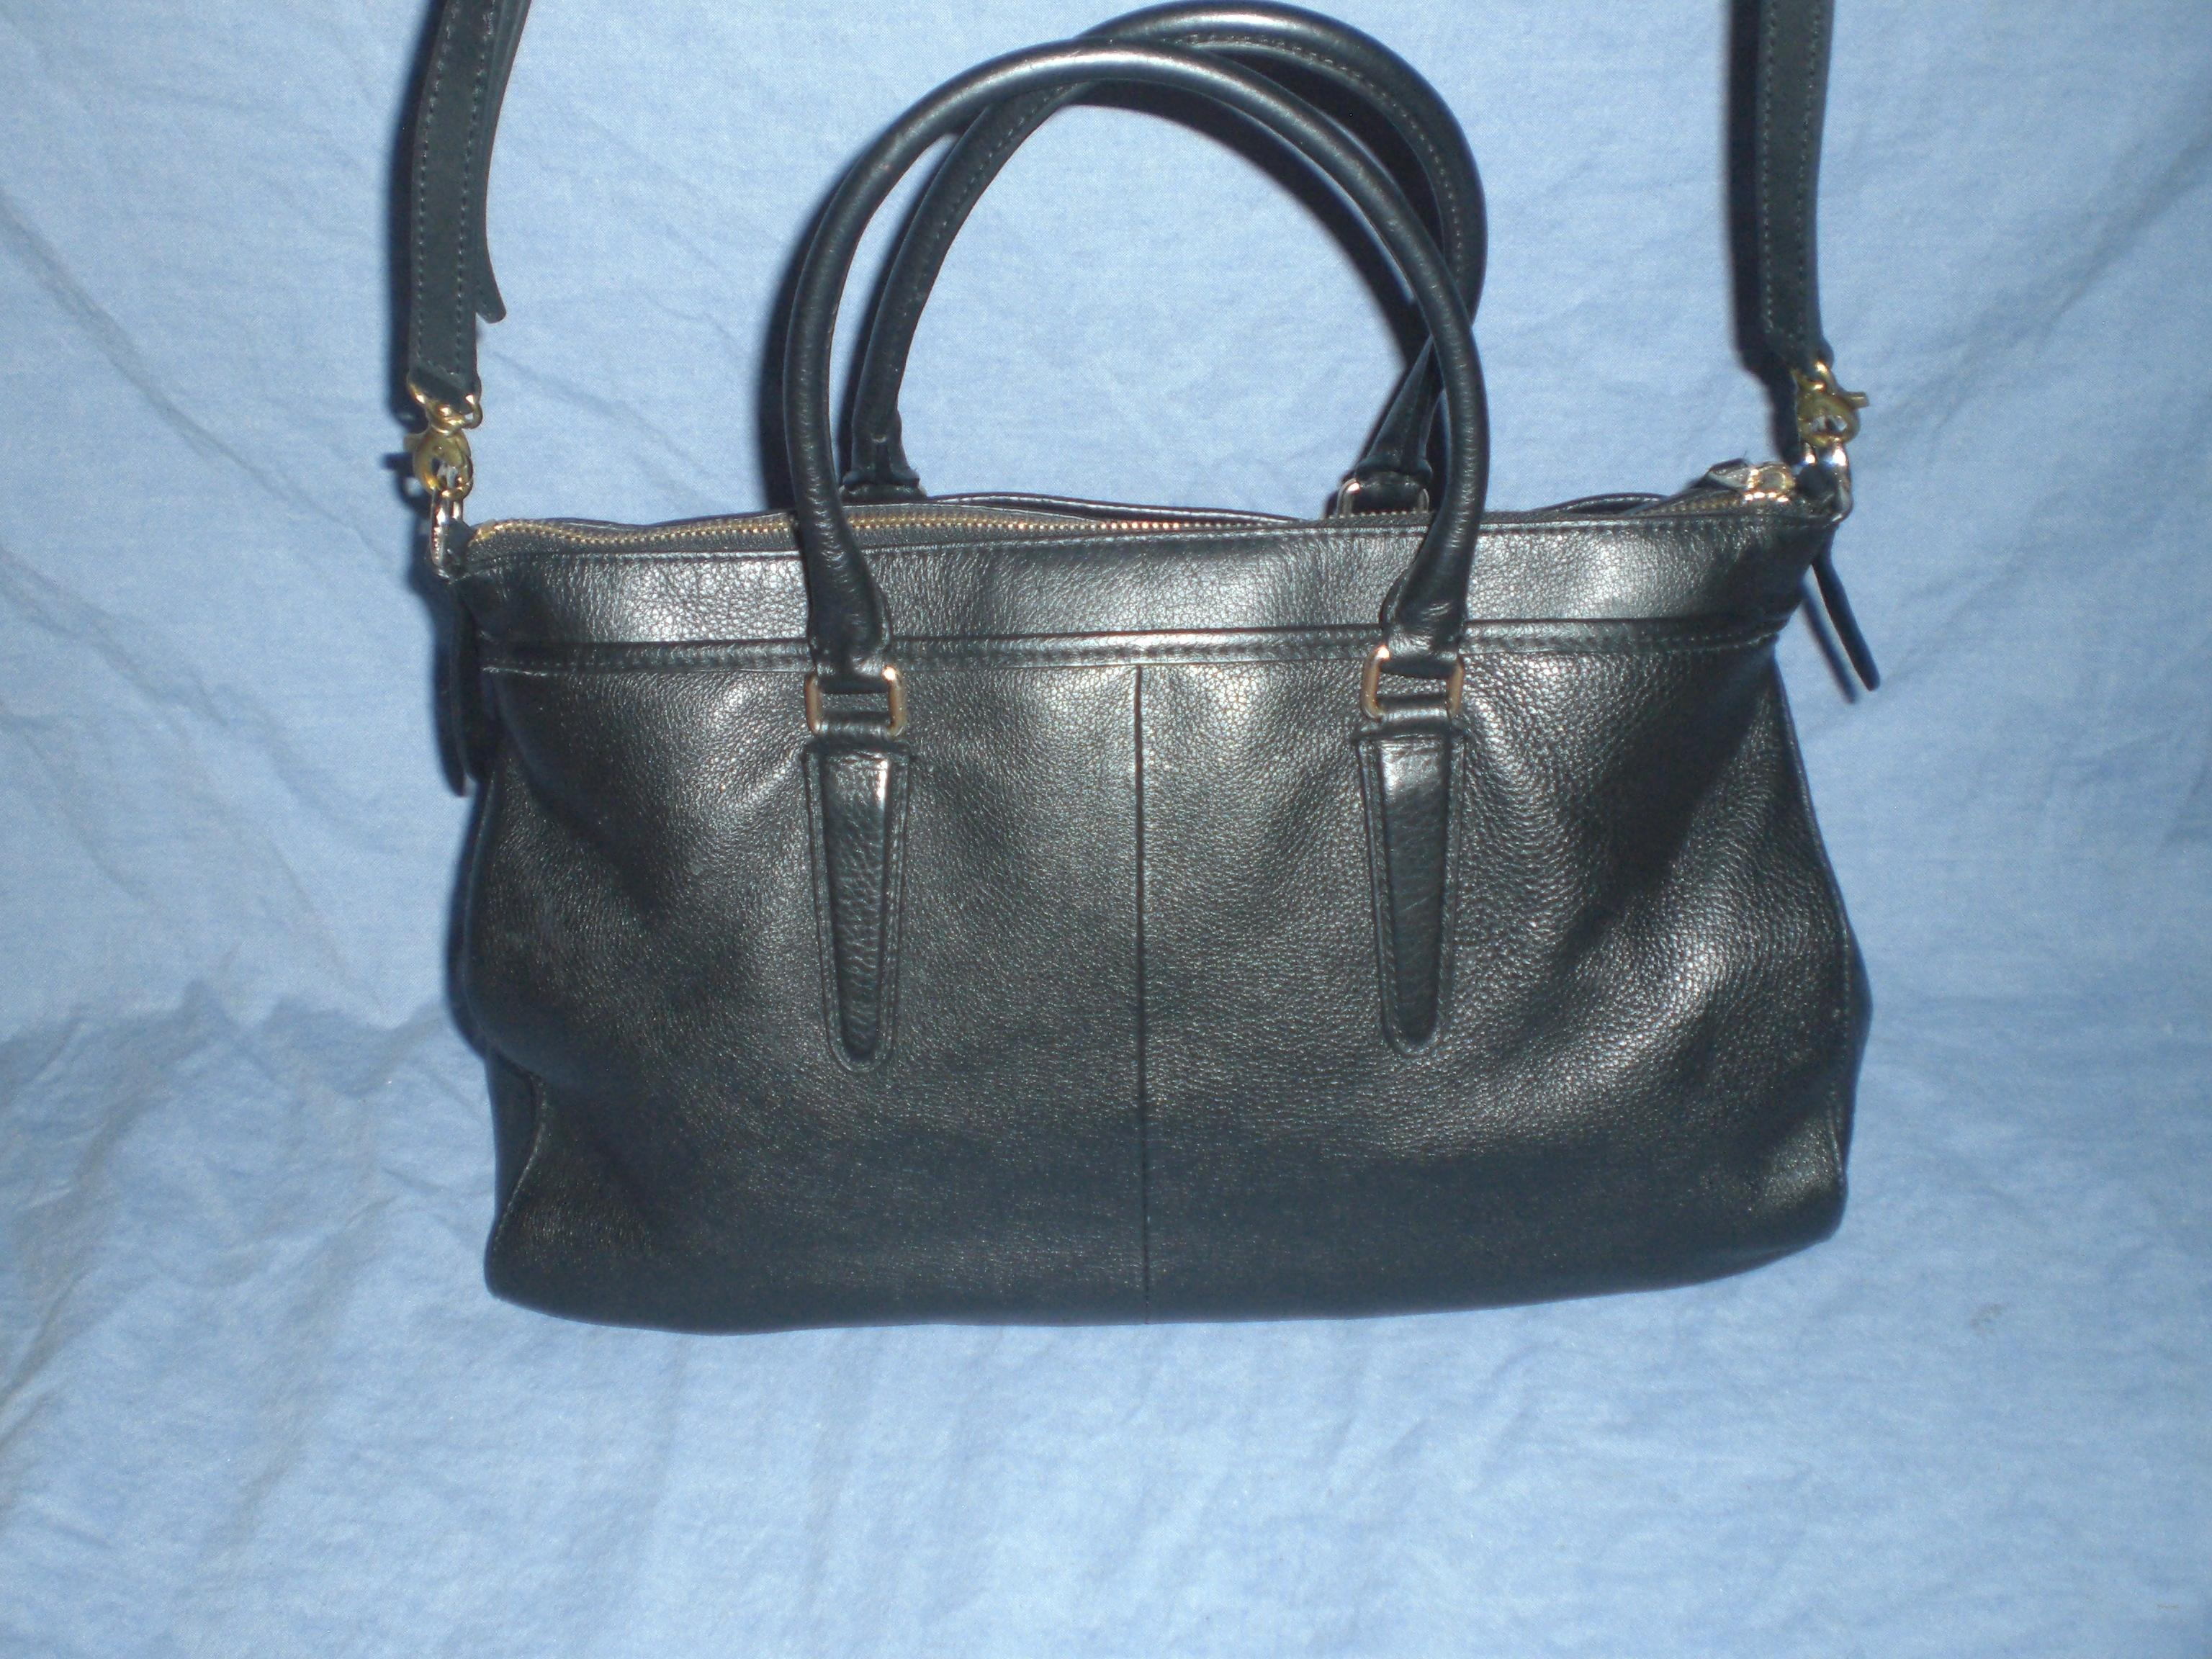 0a8b2bacf7 ... clearance coach morgan f35185 satchel crossbody black pebble leather  satchel e6cec 90b5a